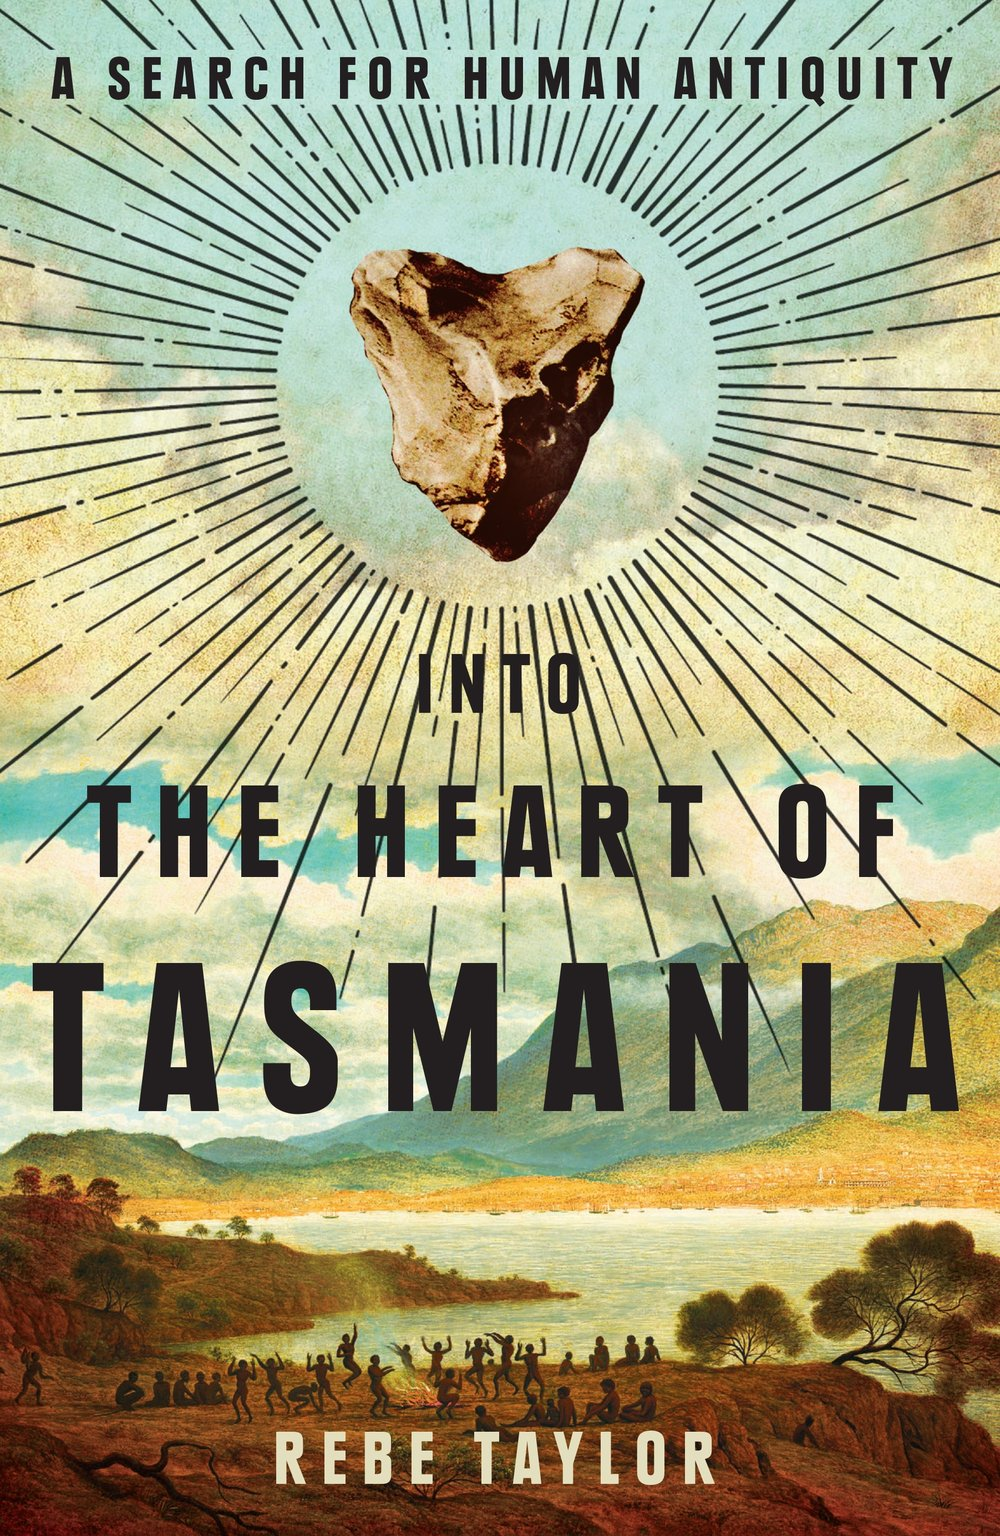 INTO THE HEART OF TASMANIA – REBE TAYLOR - One man's ambition to rewrite the history of human culture inspires an exploration of the controversy stirred by Tasmanian Aboriginal history. It brings to life how Australian and British national identities have been fashioned by shame and triumph over the supposed destruction of an entire race.